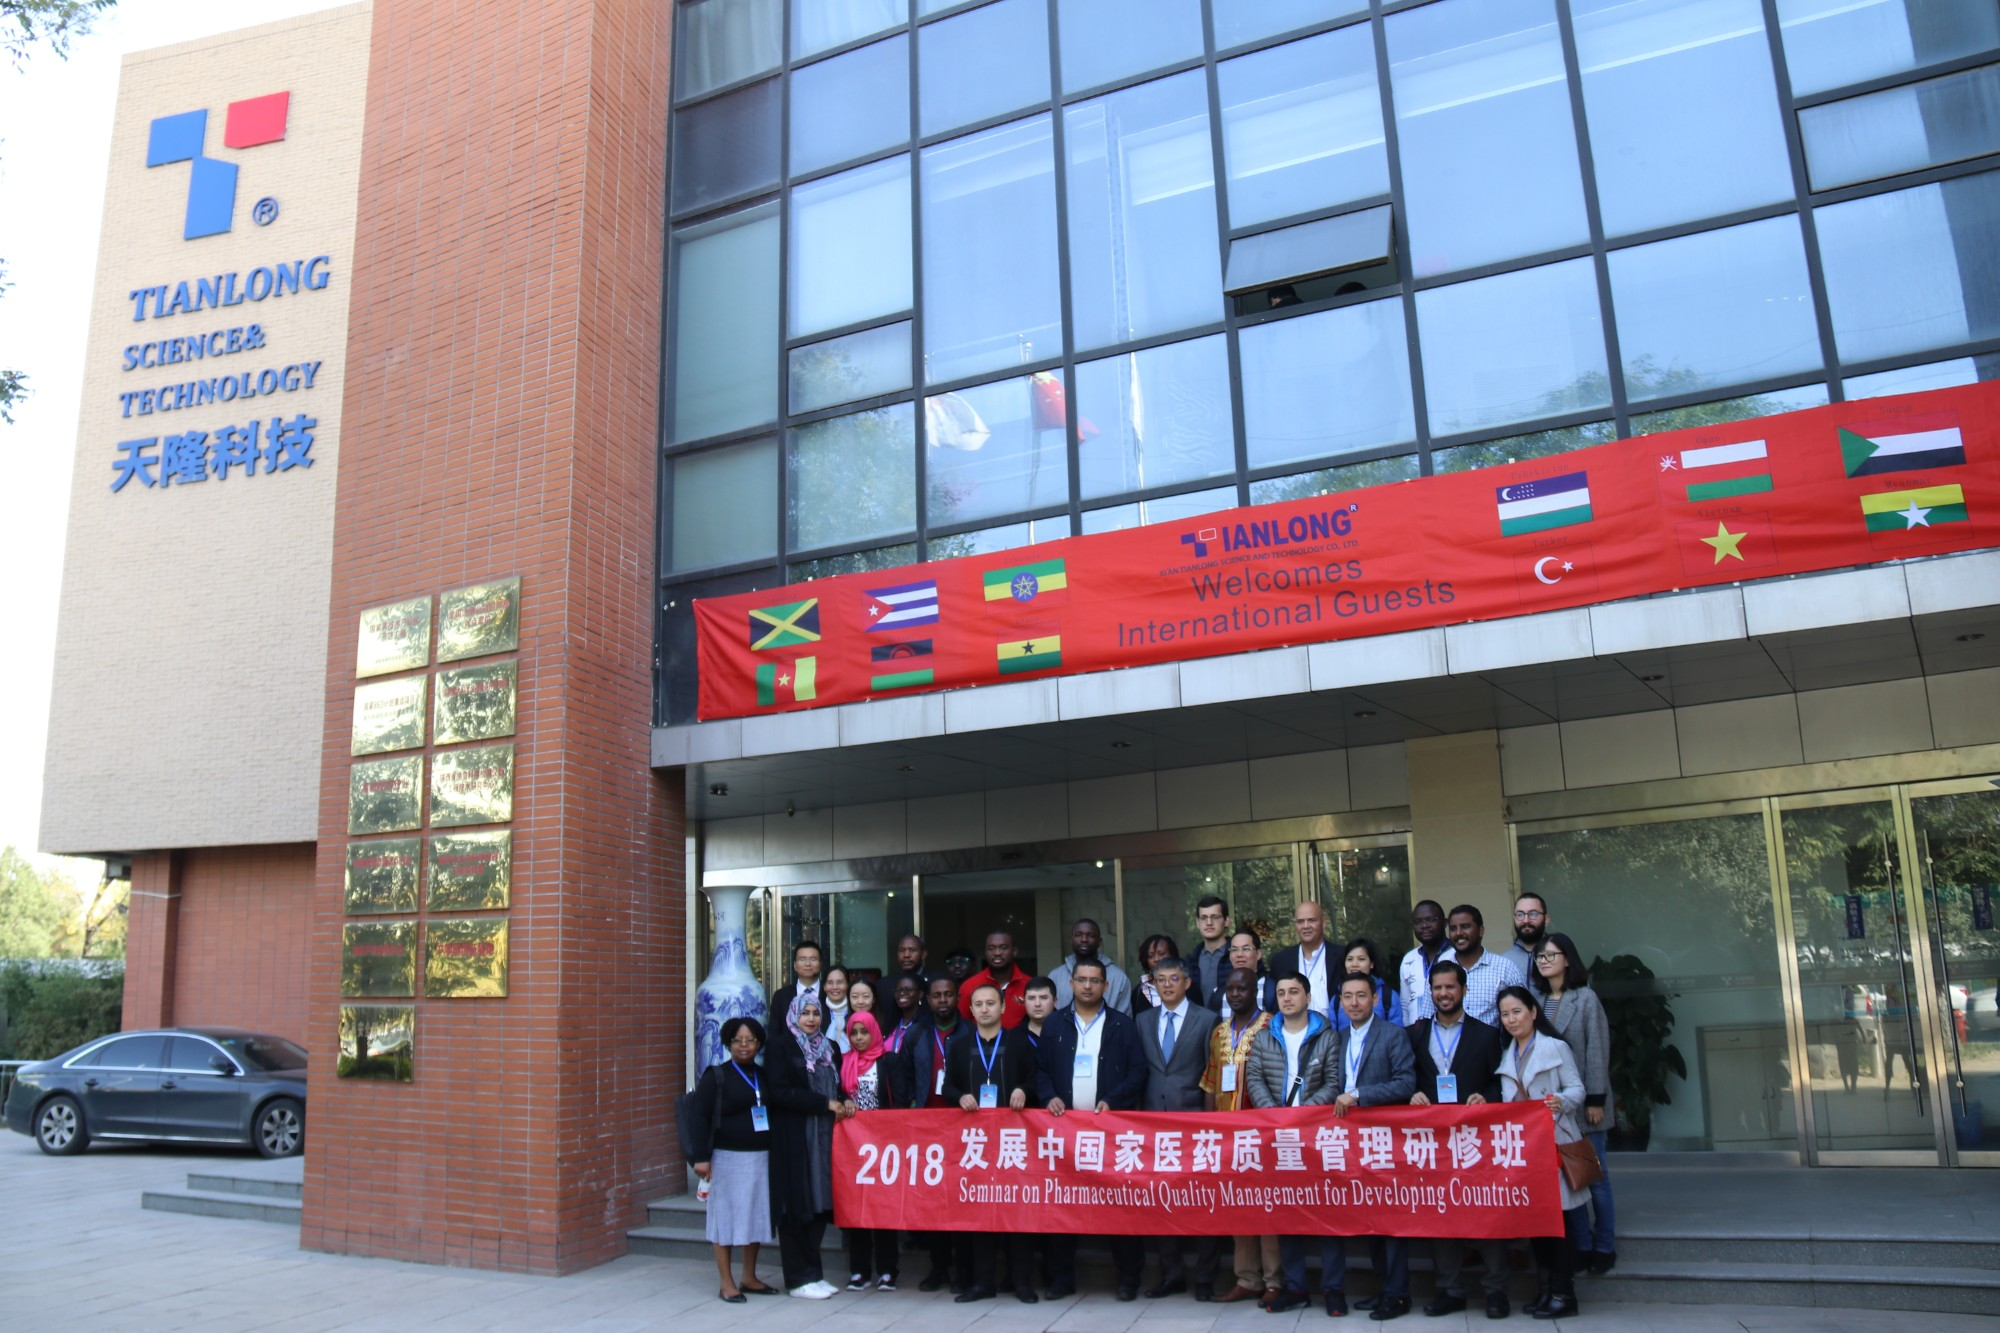 African customer visited Tianlong office and production center